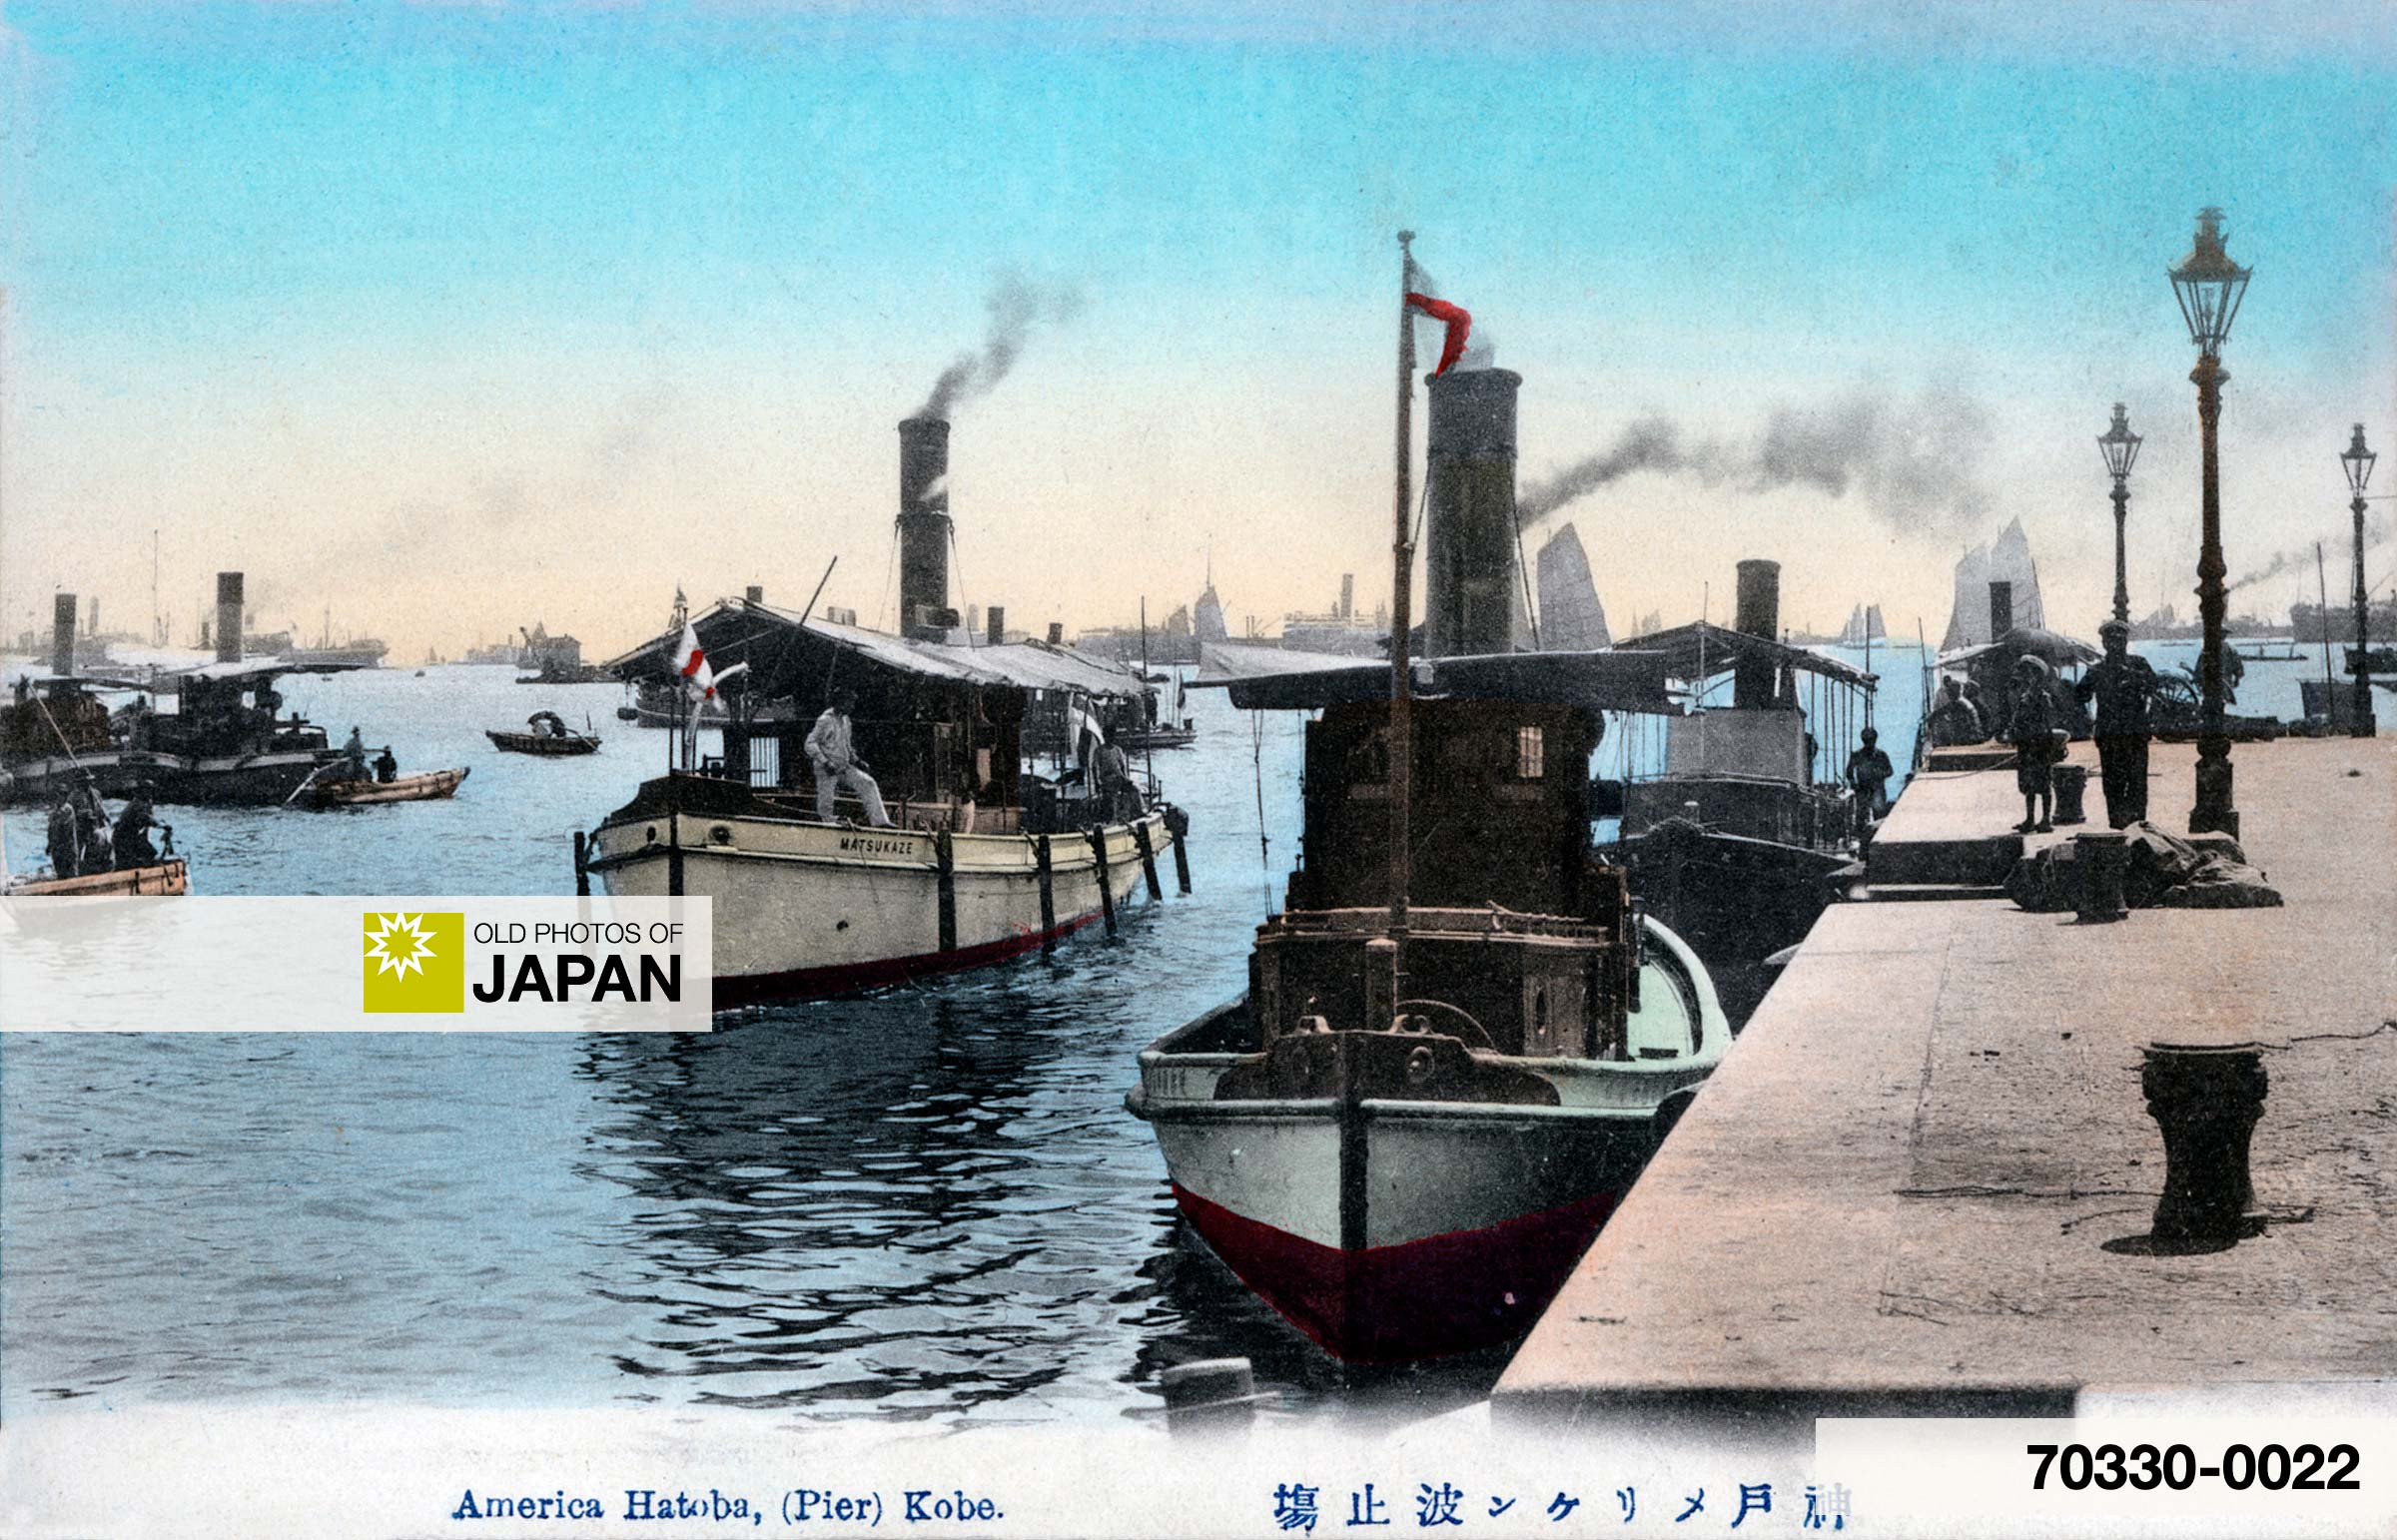 Steam Boats at America Hatoba in Kobe